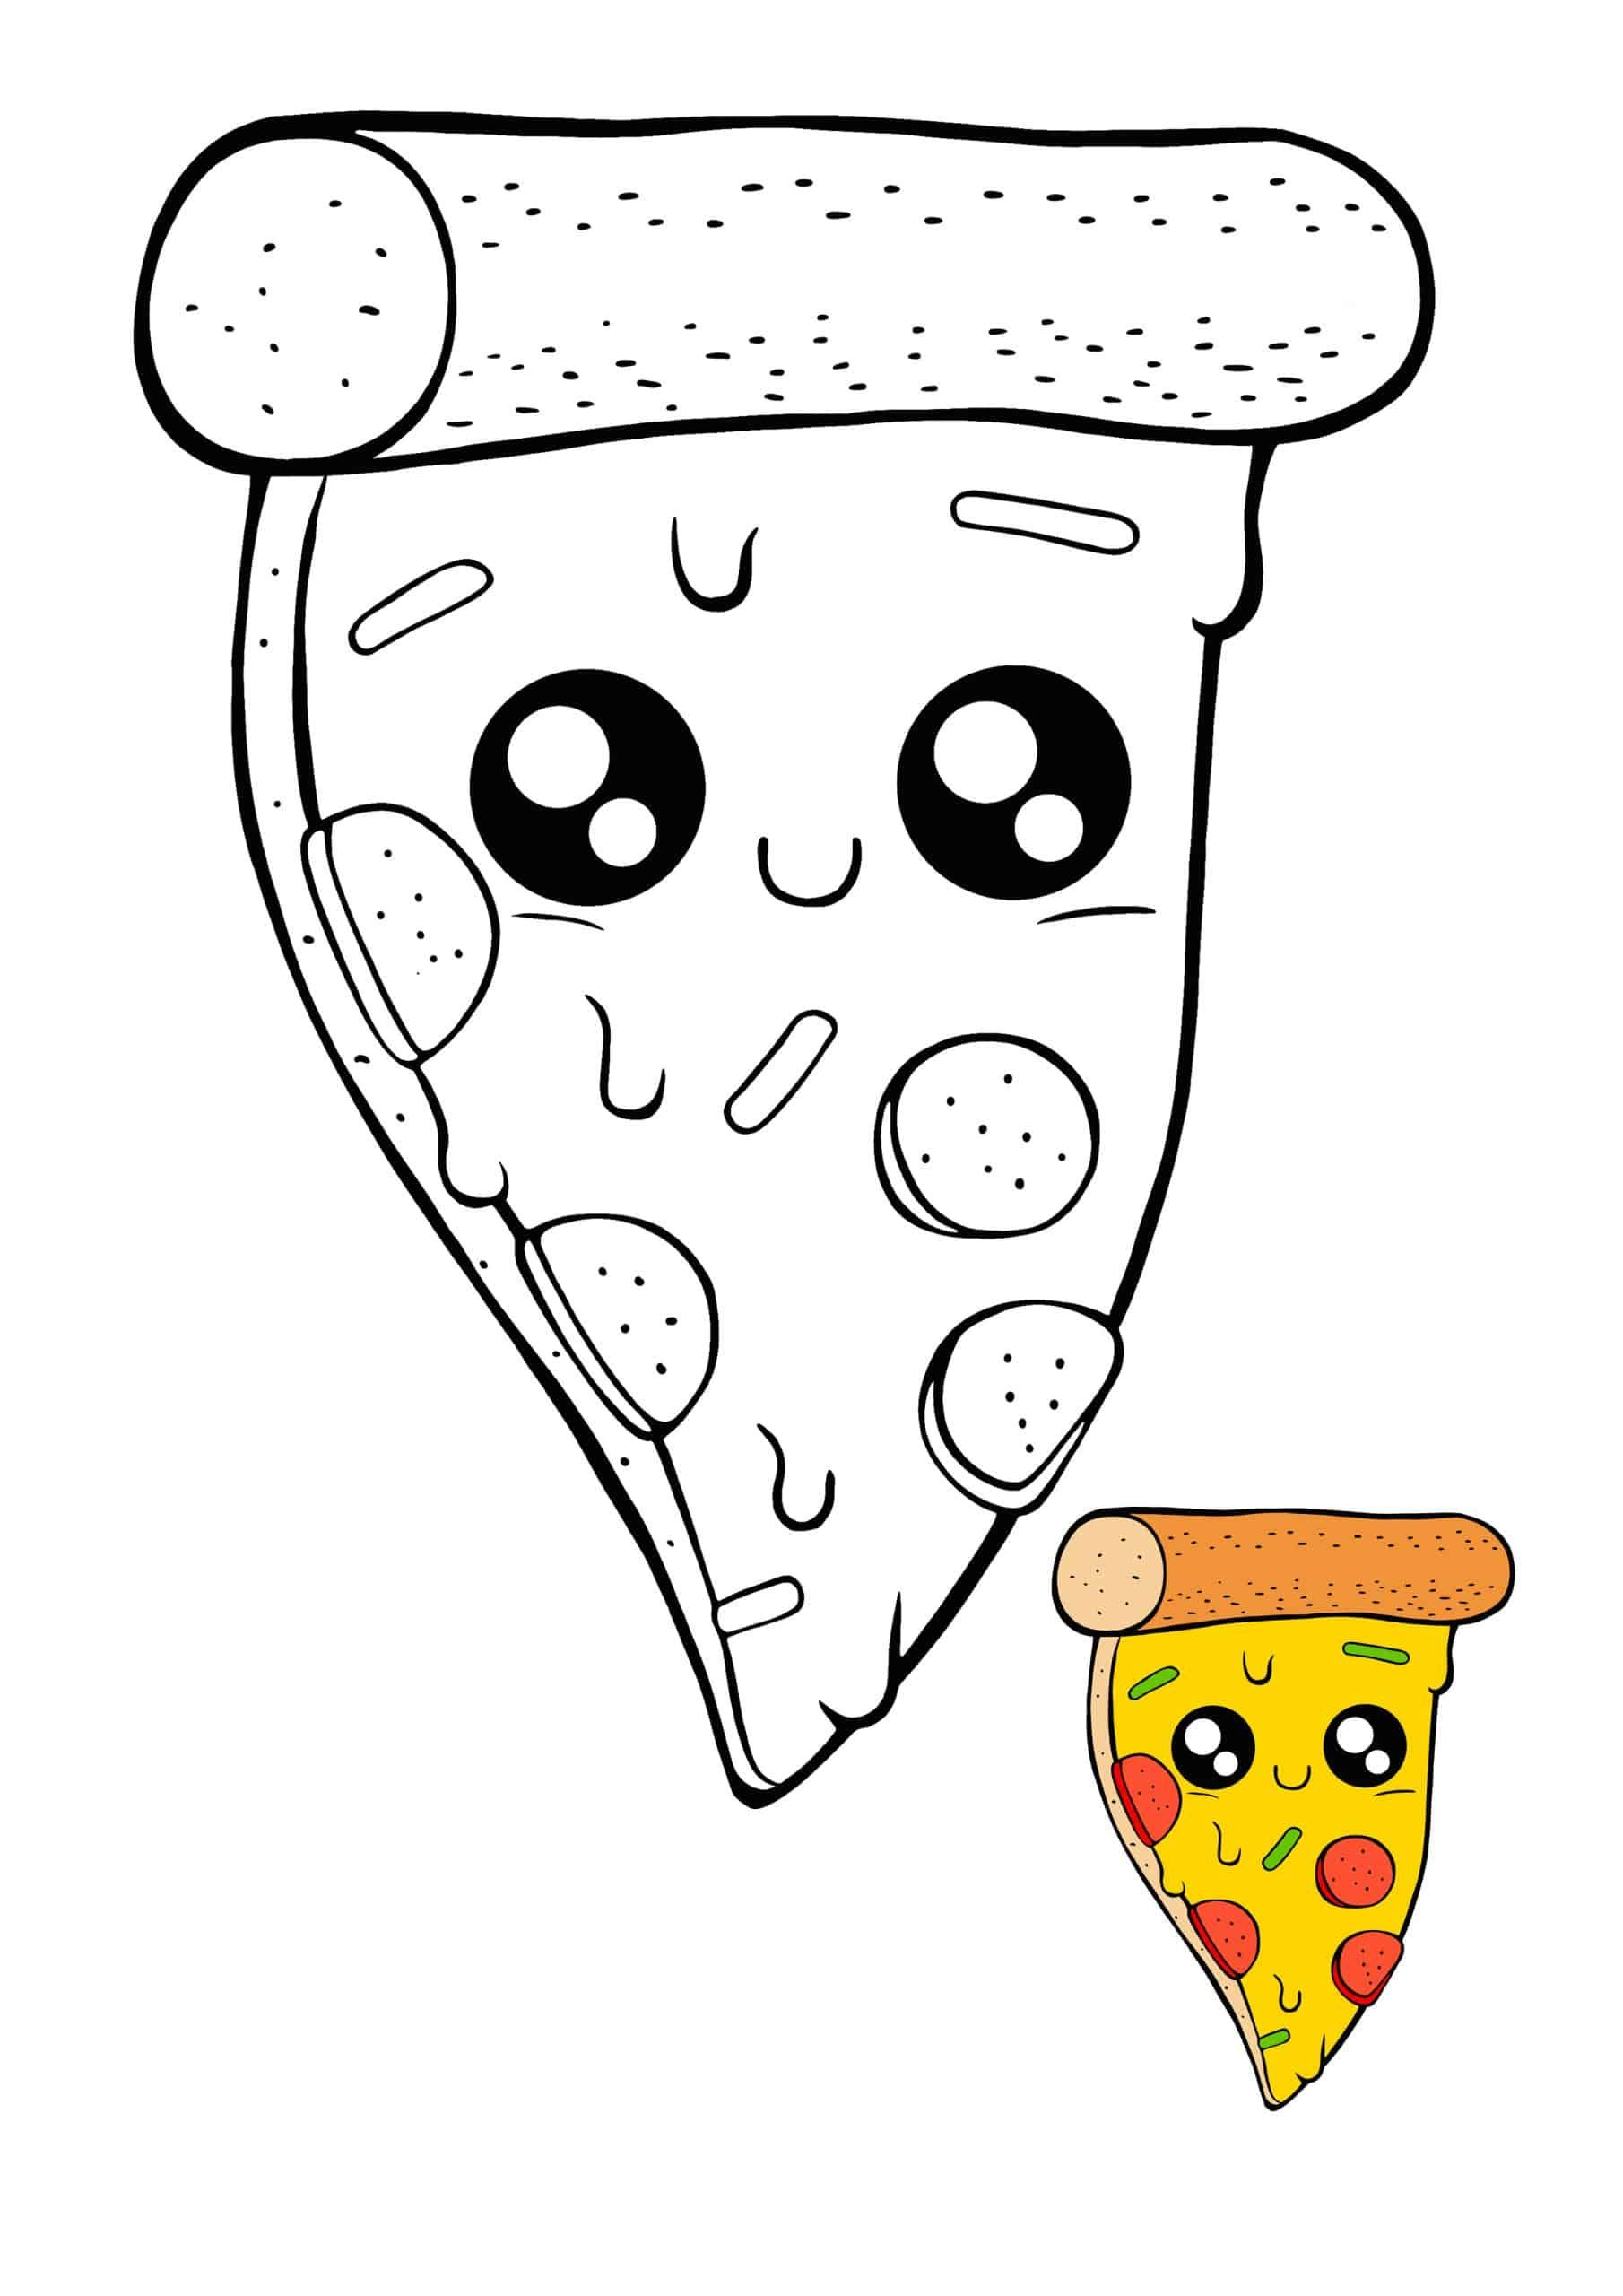 Kawaii Pizza Coloring Sheet Unicorn Coloring Pages Coloring Pages Pizza Coloring Page